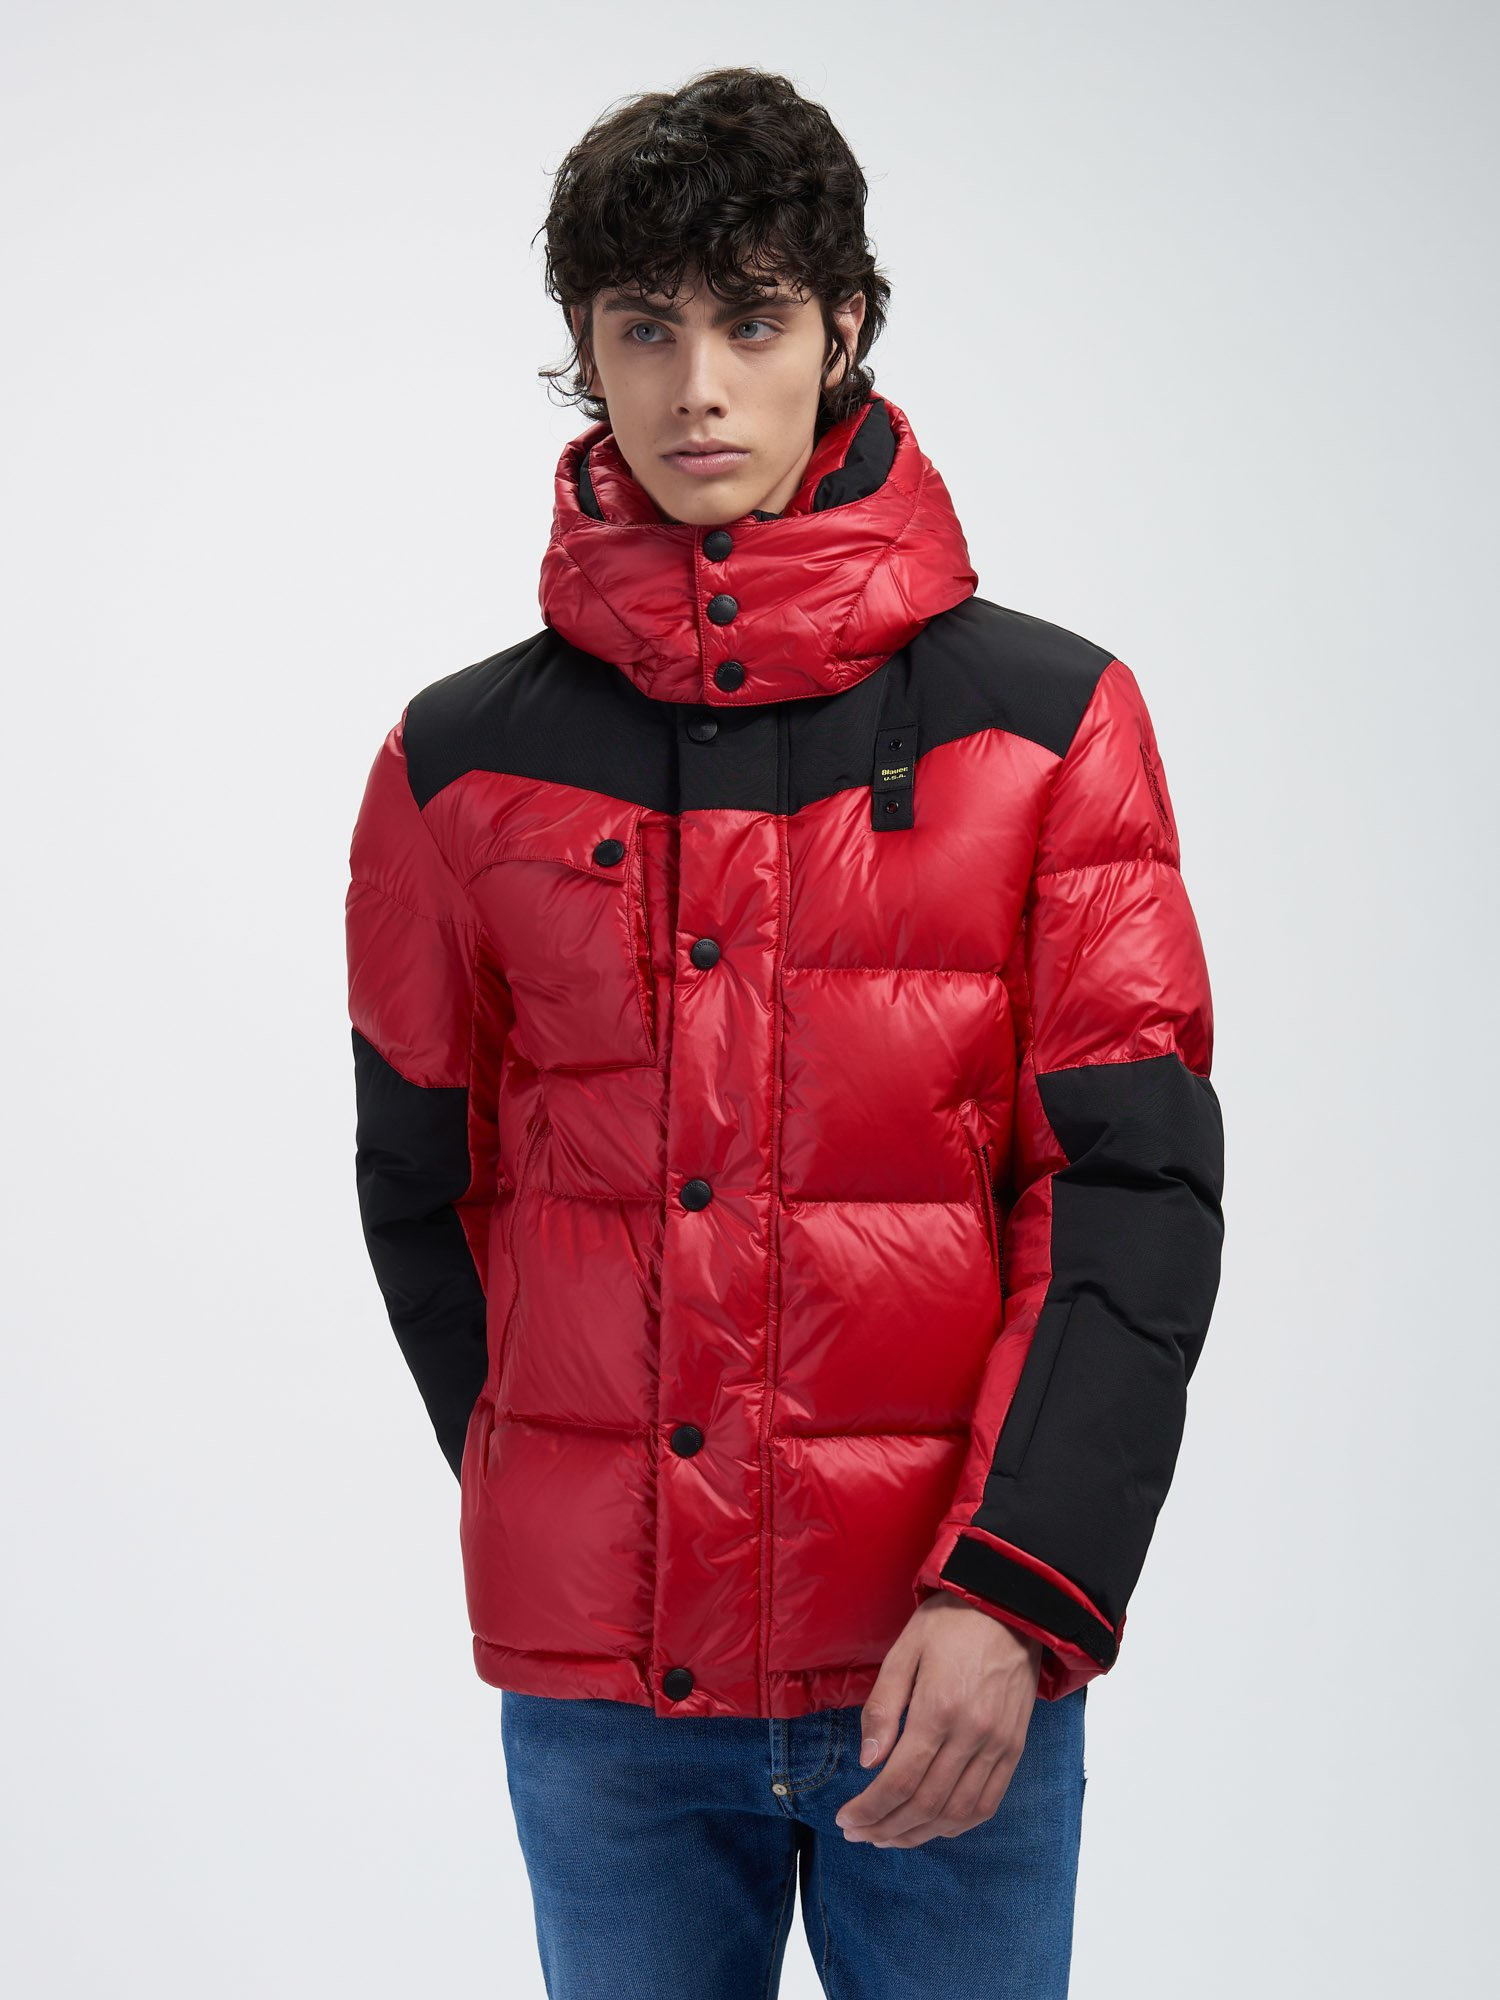 ARTHUR DOWN JACKET IN SHINY NYLON AND TASLAN - Blauer